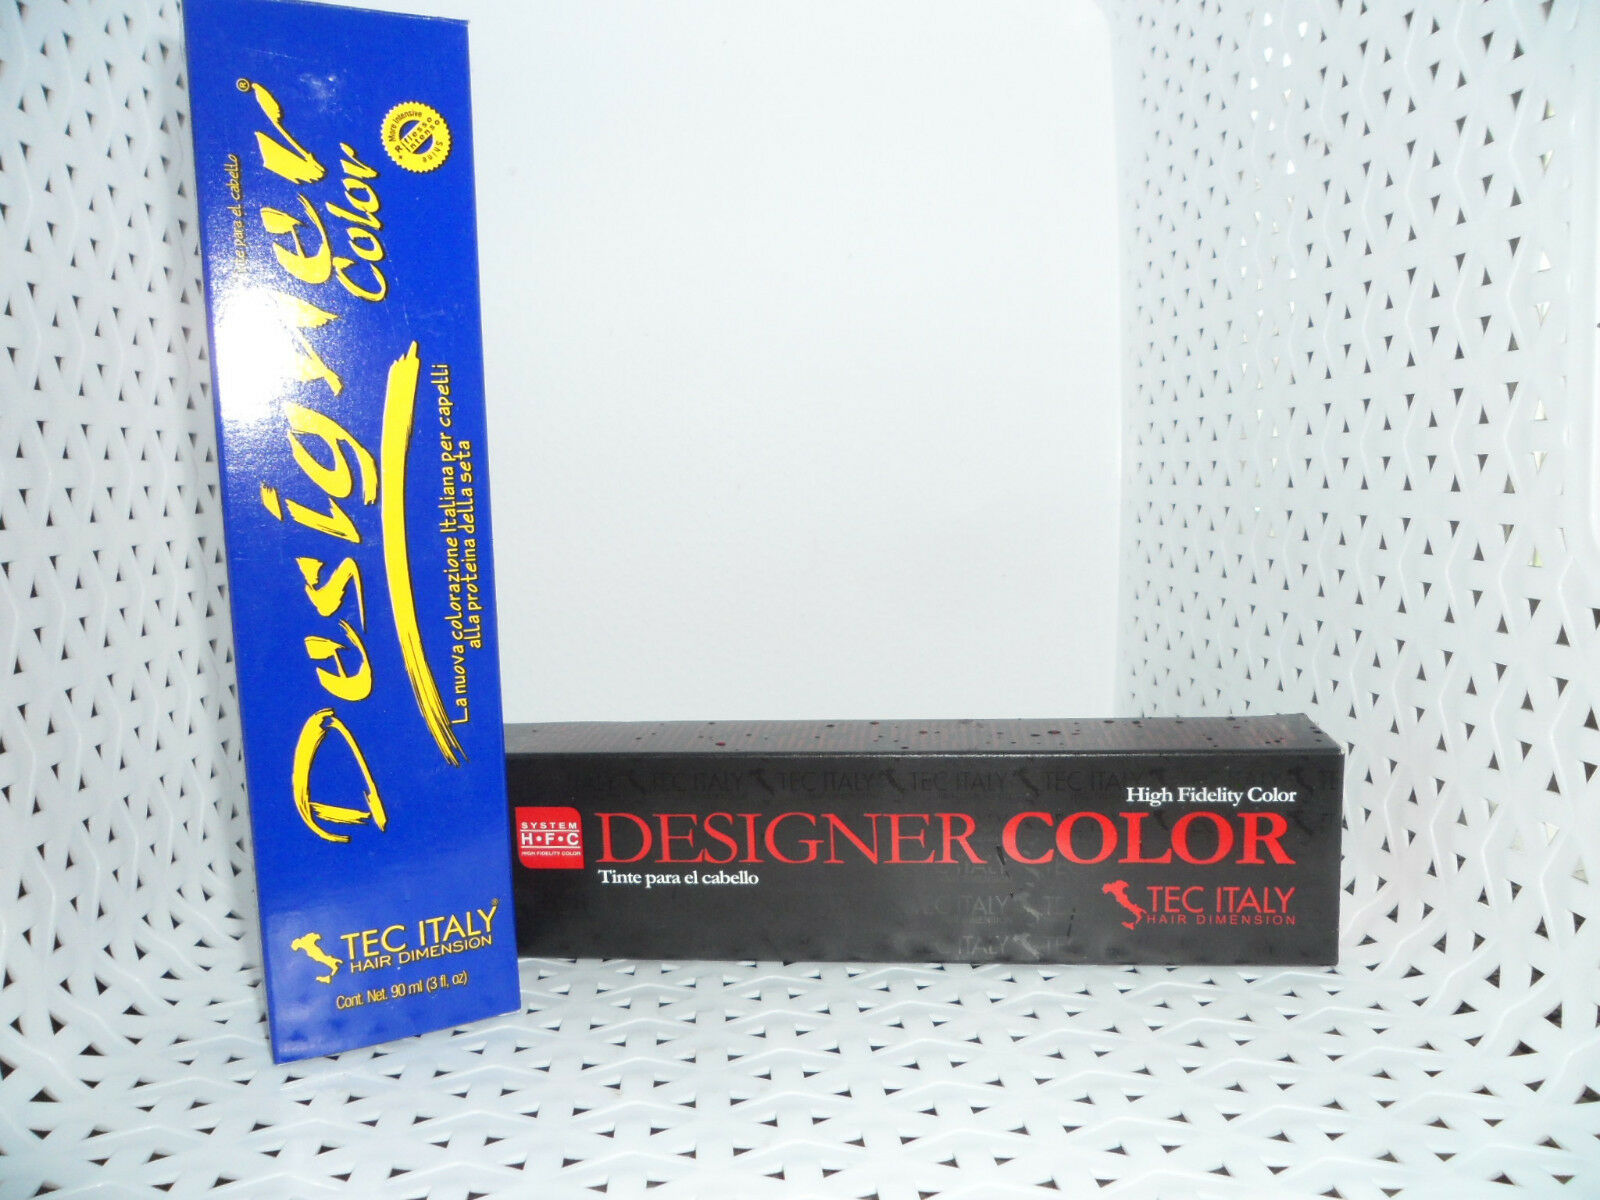 Color art by tec italy - Tec Italy Designer Color Colori Pazzi Silver Plata Haircolor 3 Oz Ebay